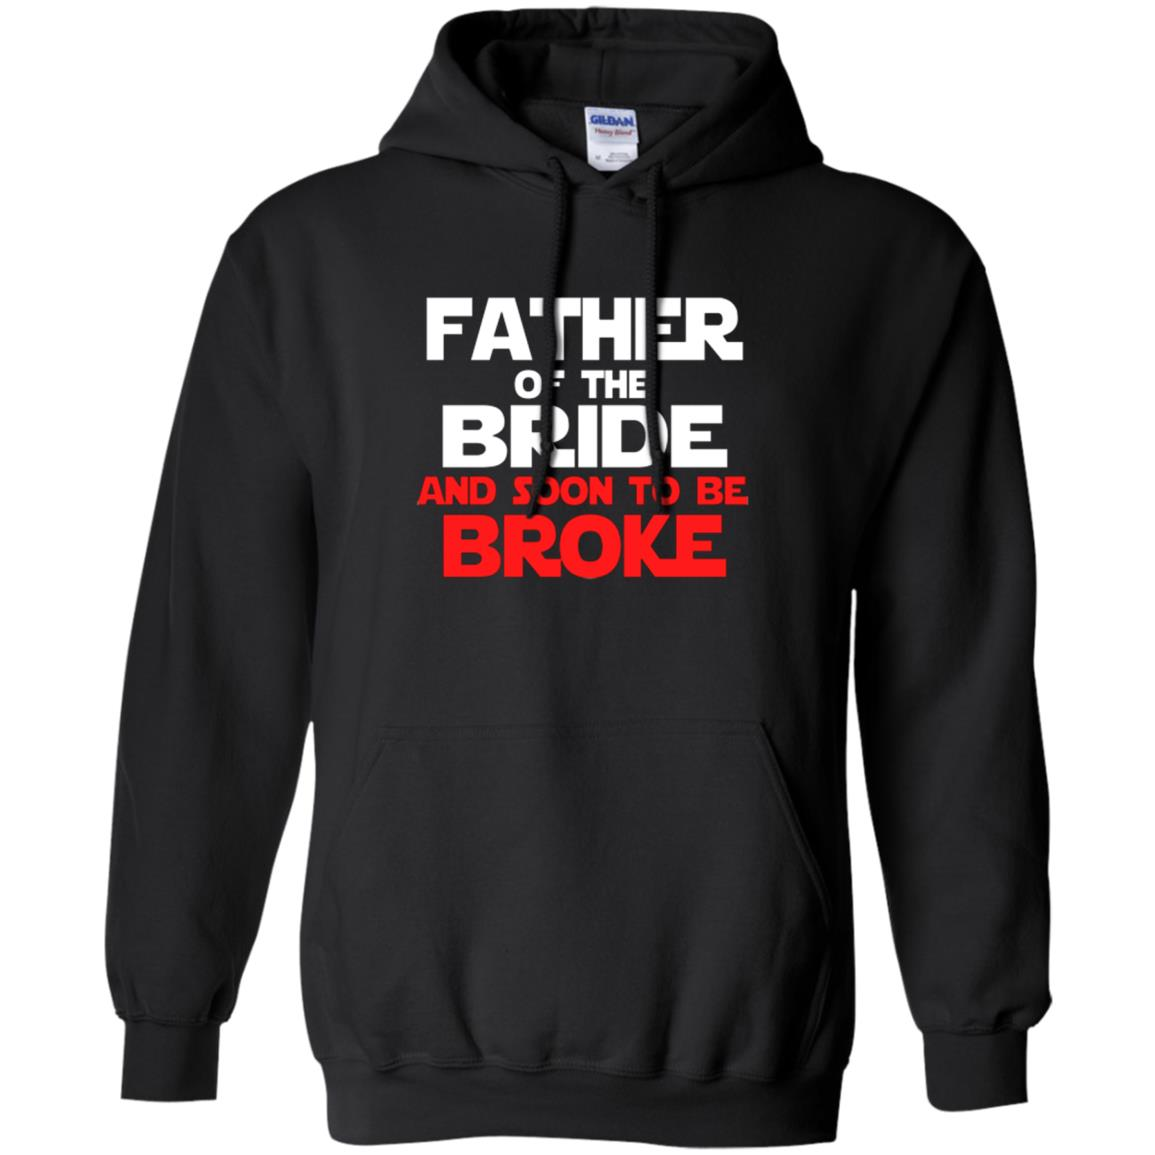 FATHER OF THE BRIDE AND SOON TO BE BROKE Hoodie